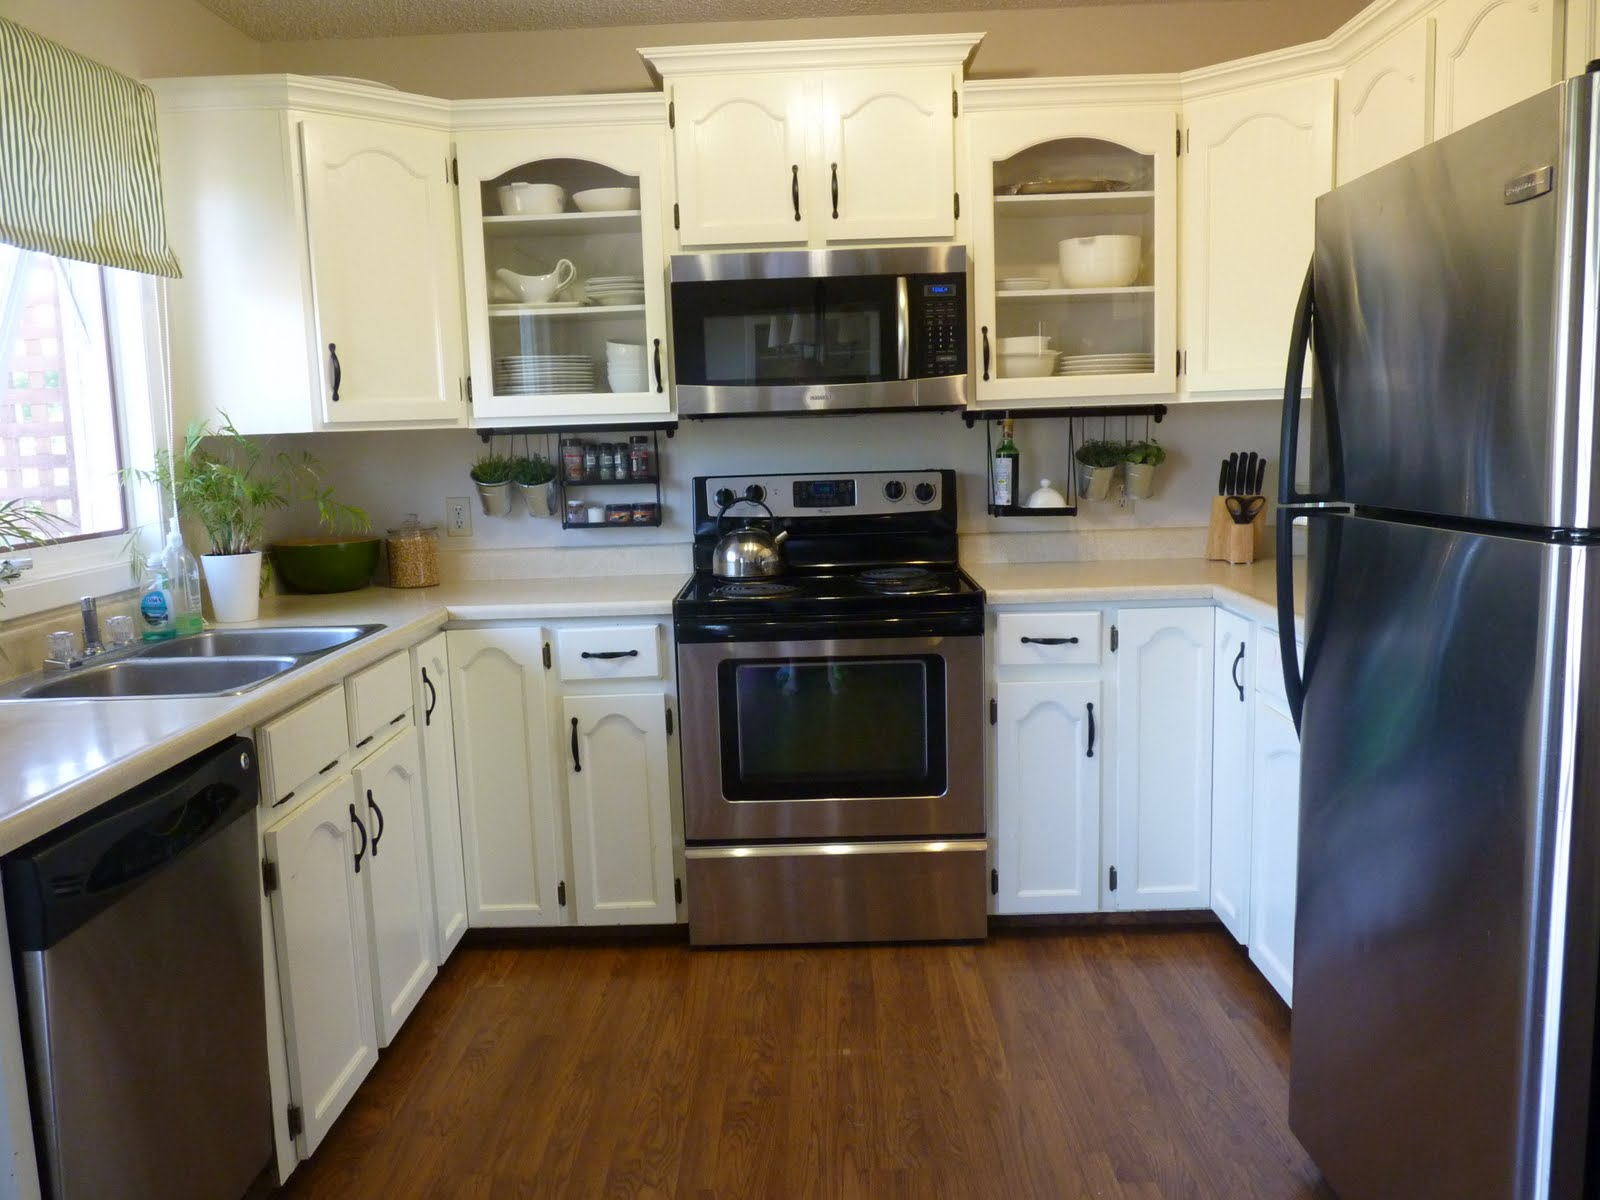 Renovating A Small Kitchen Awesome With Kitchen Cabinets Over Range Microwave Pictures